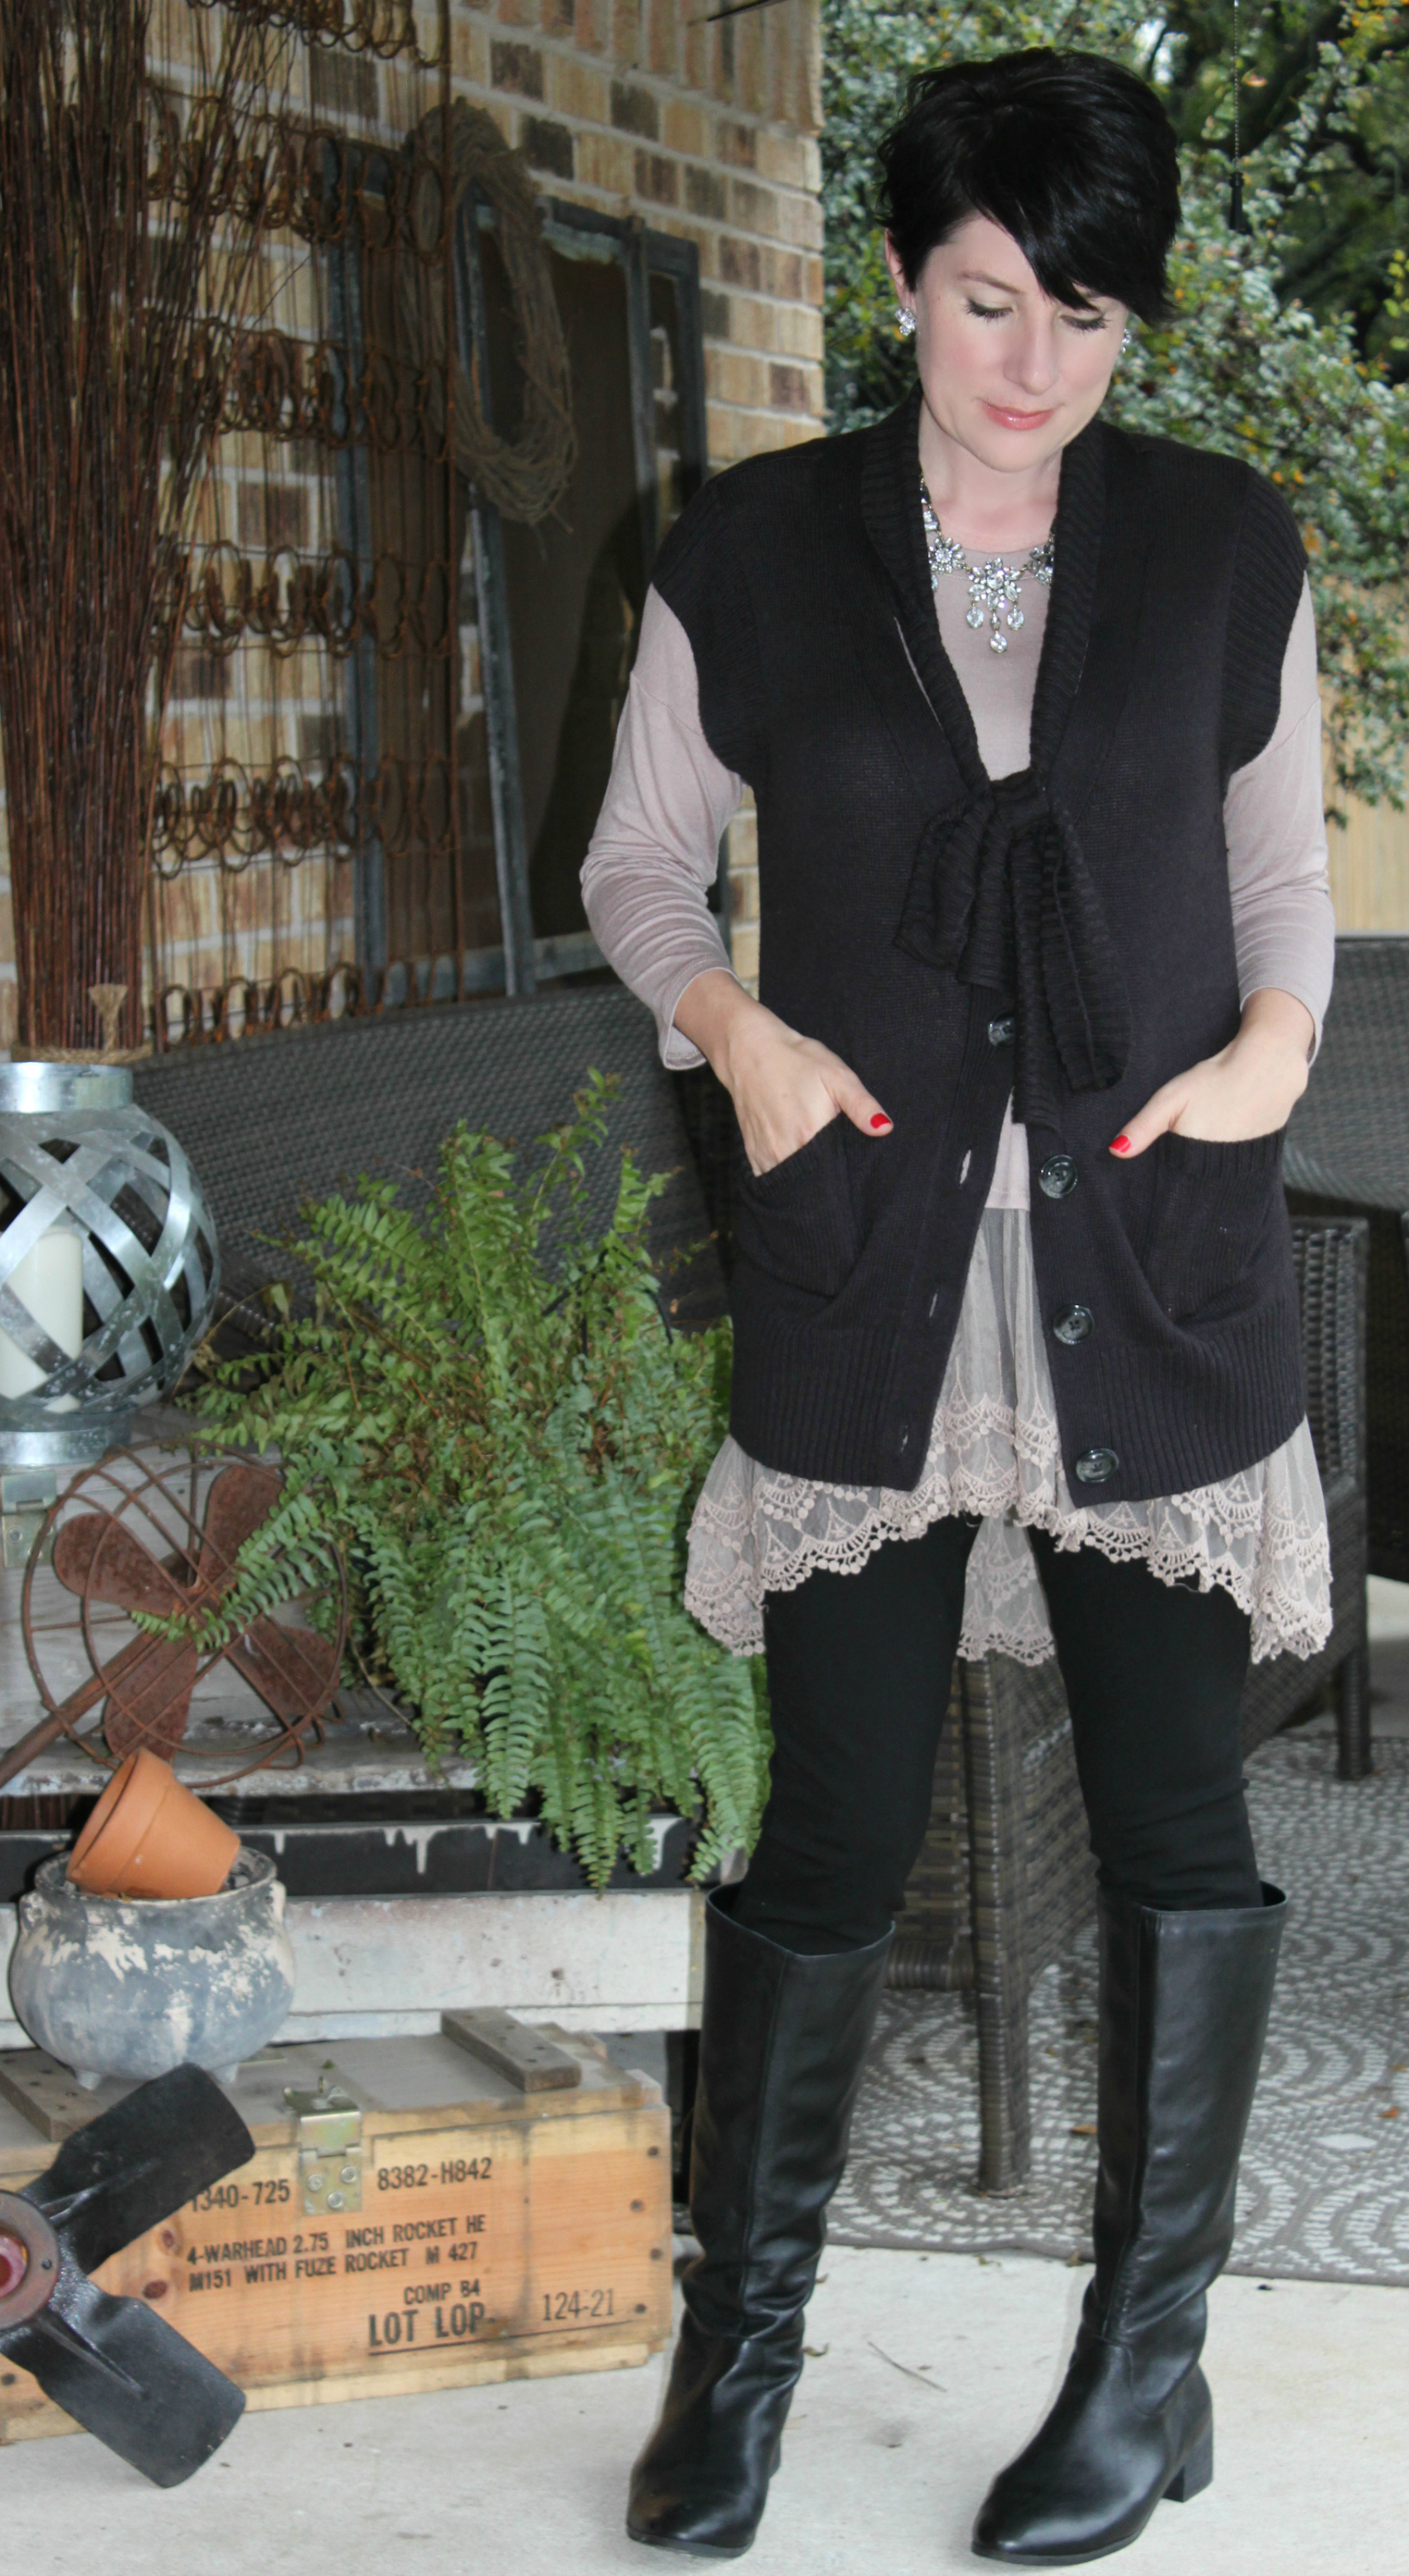 Sunday Style: Lace Trimmed Tunic by An Inspired Nest